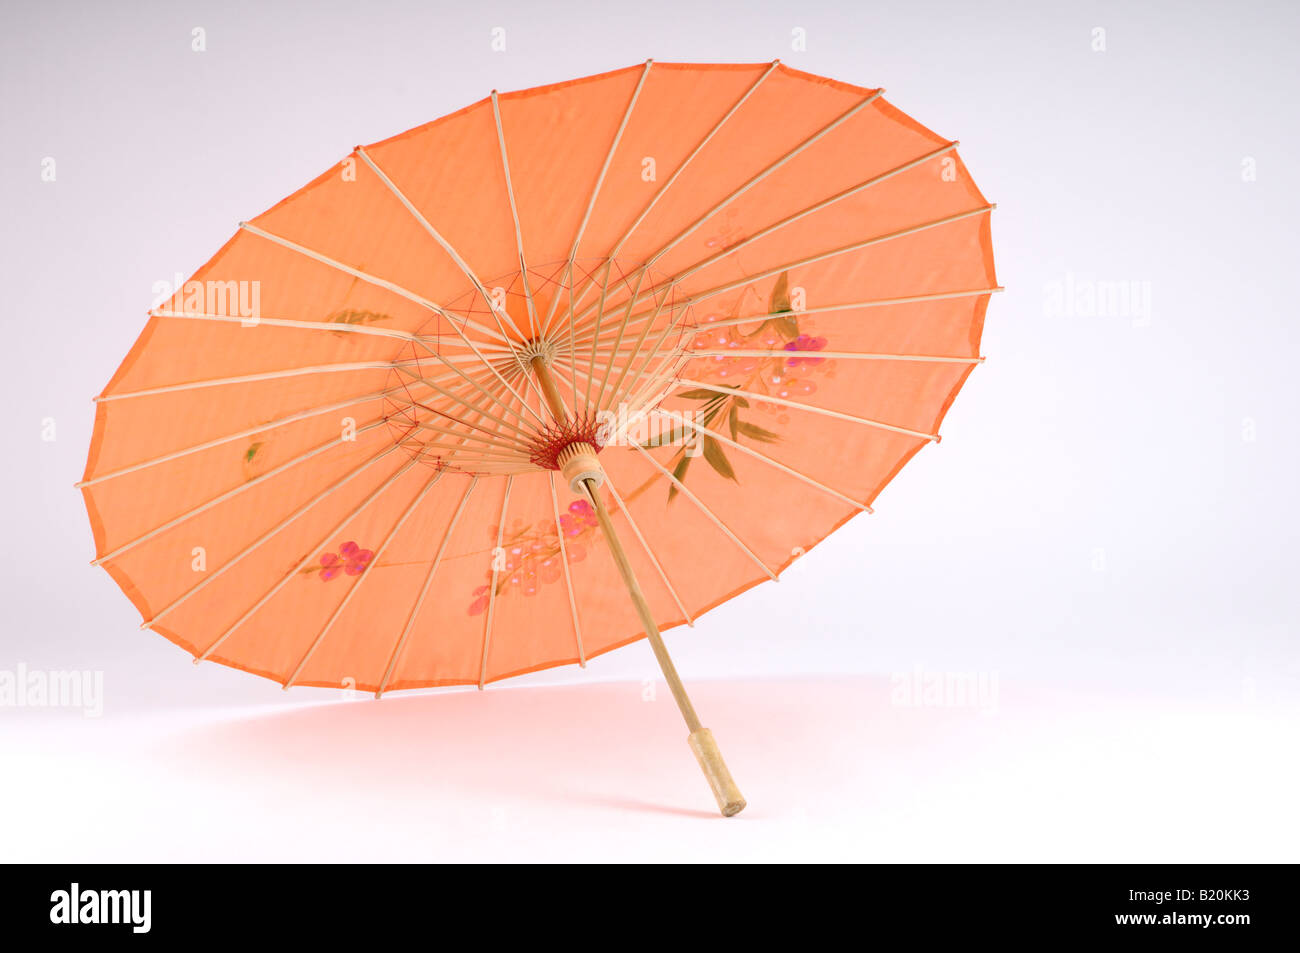 Sombrilla China Foto Imagen De Stock 18455111 Alamy - Sombrilla-china